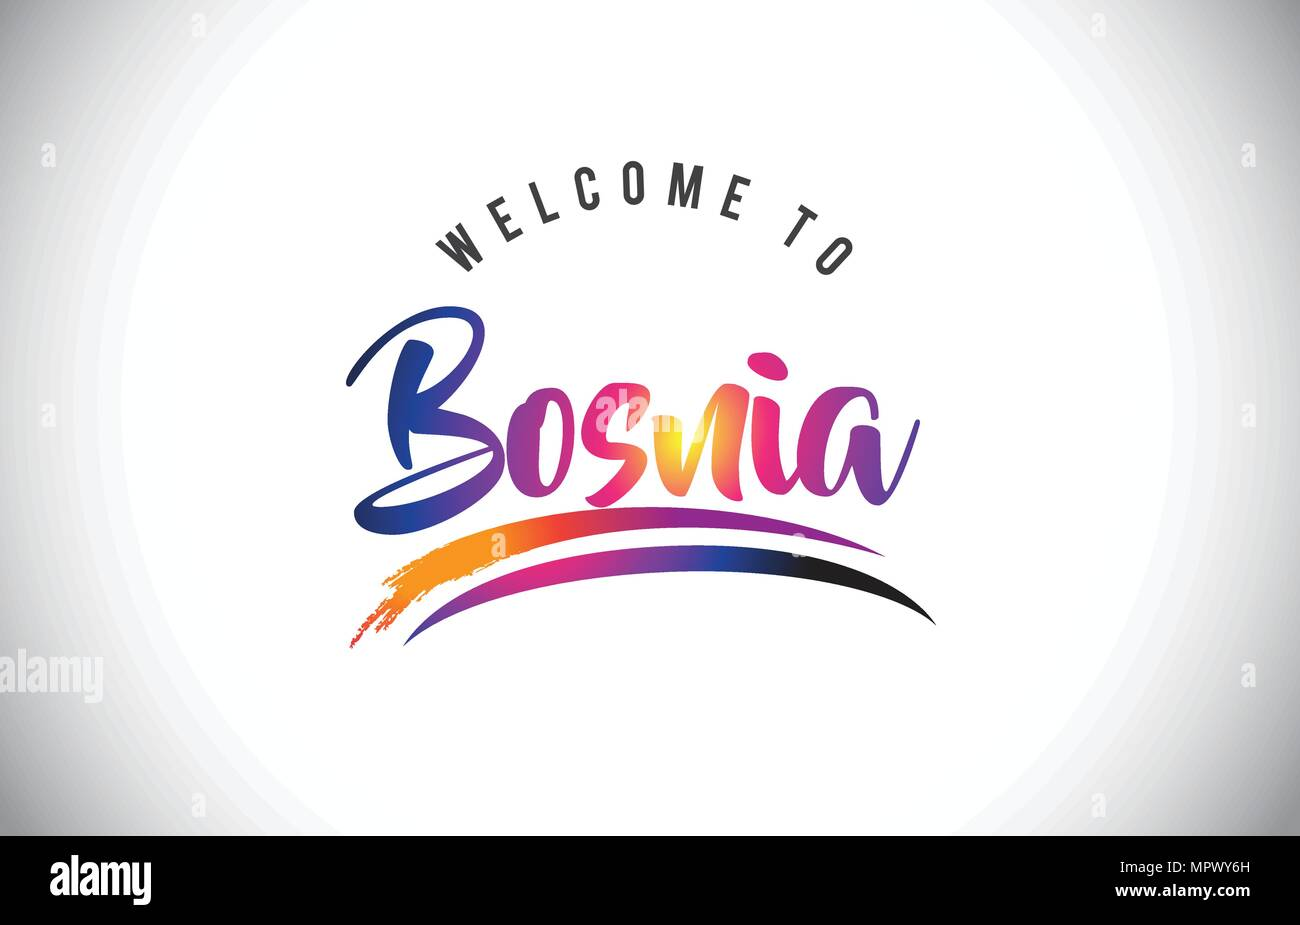 Bosnia Welcome To Message in Purple Vibrant Modern Colors Vector Illustration. - Stock Vector